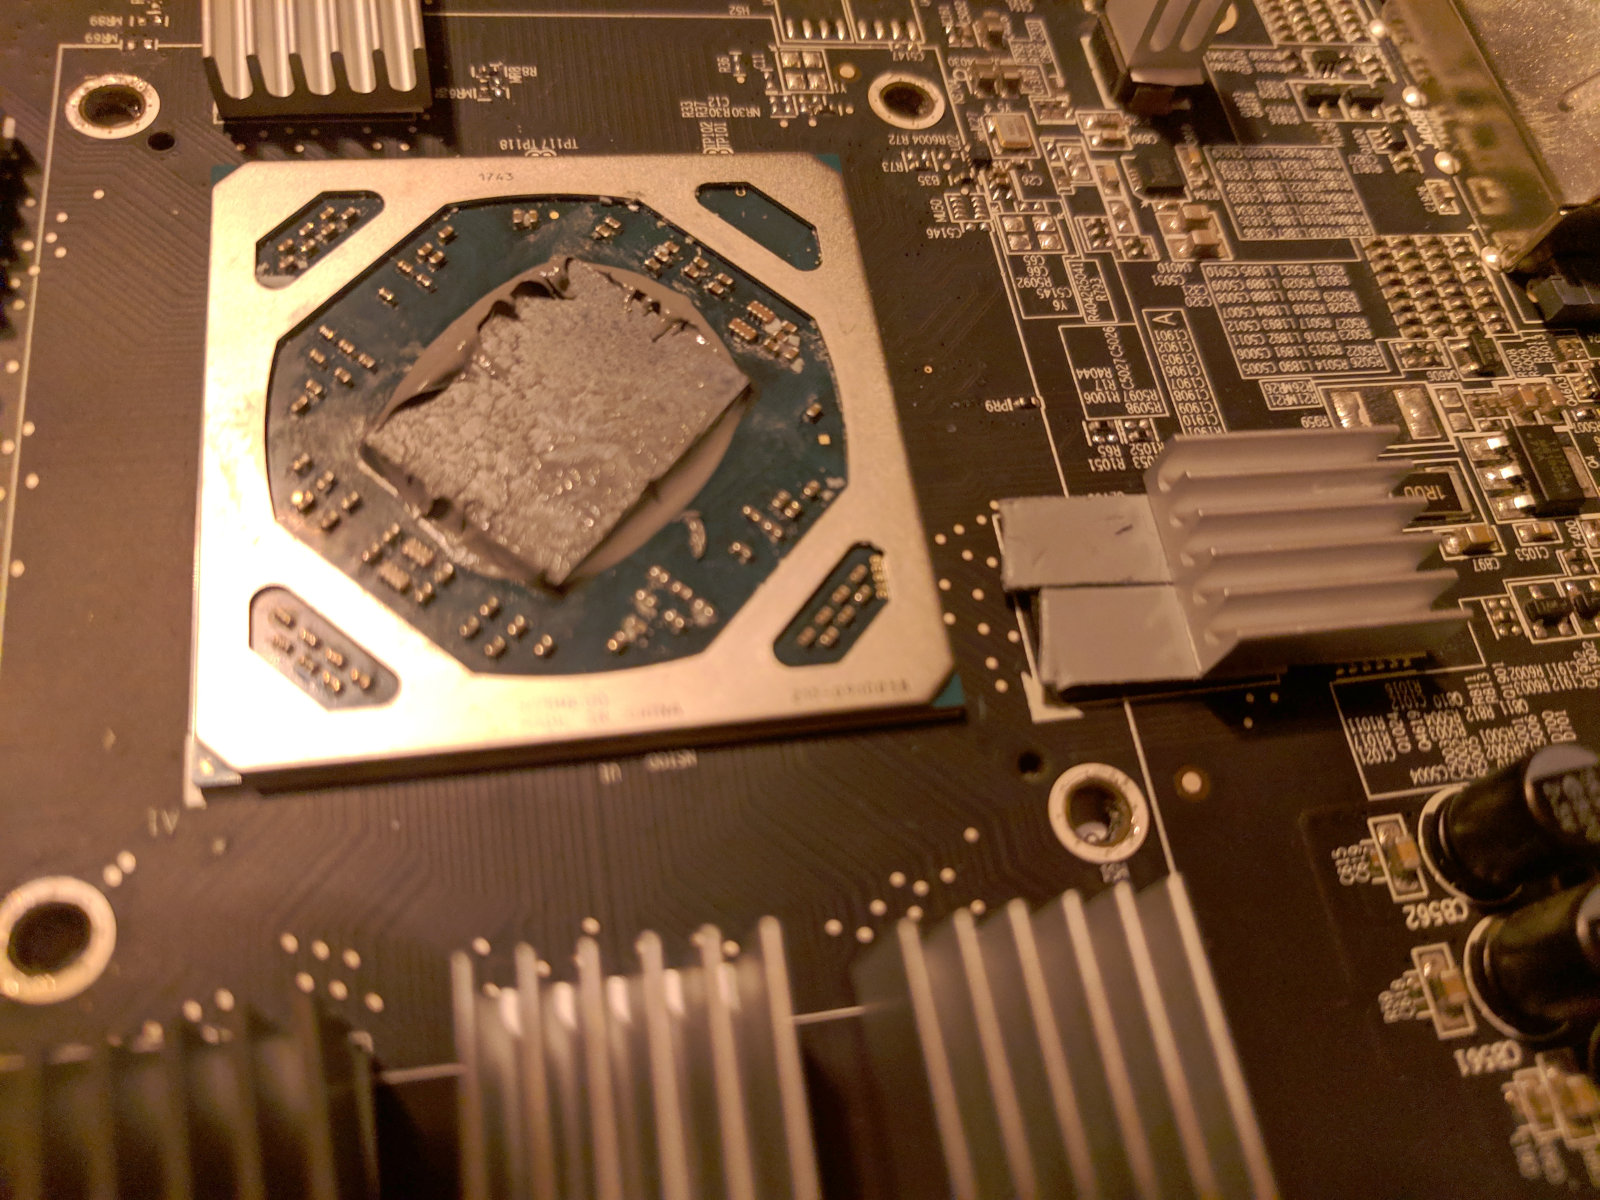 /blog/upload/15_thermalpad_heatsink_improv.jpg